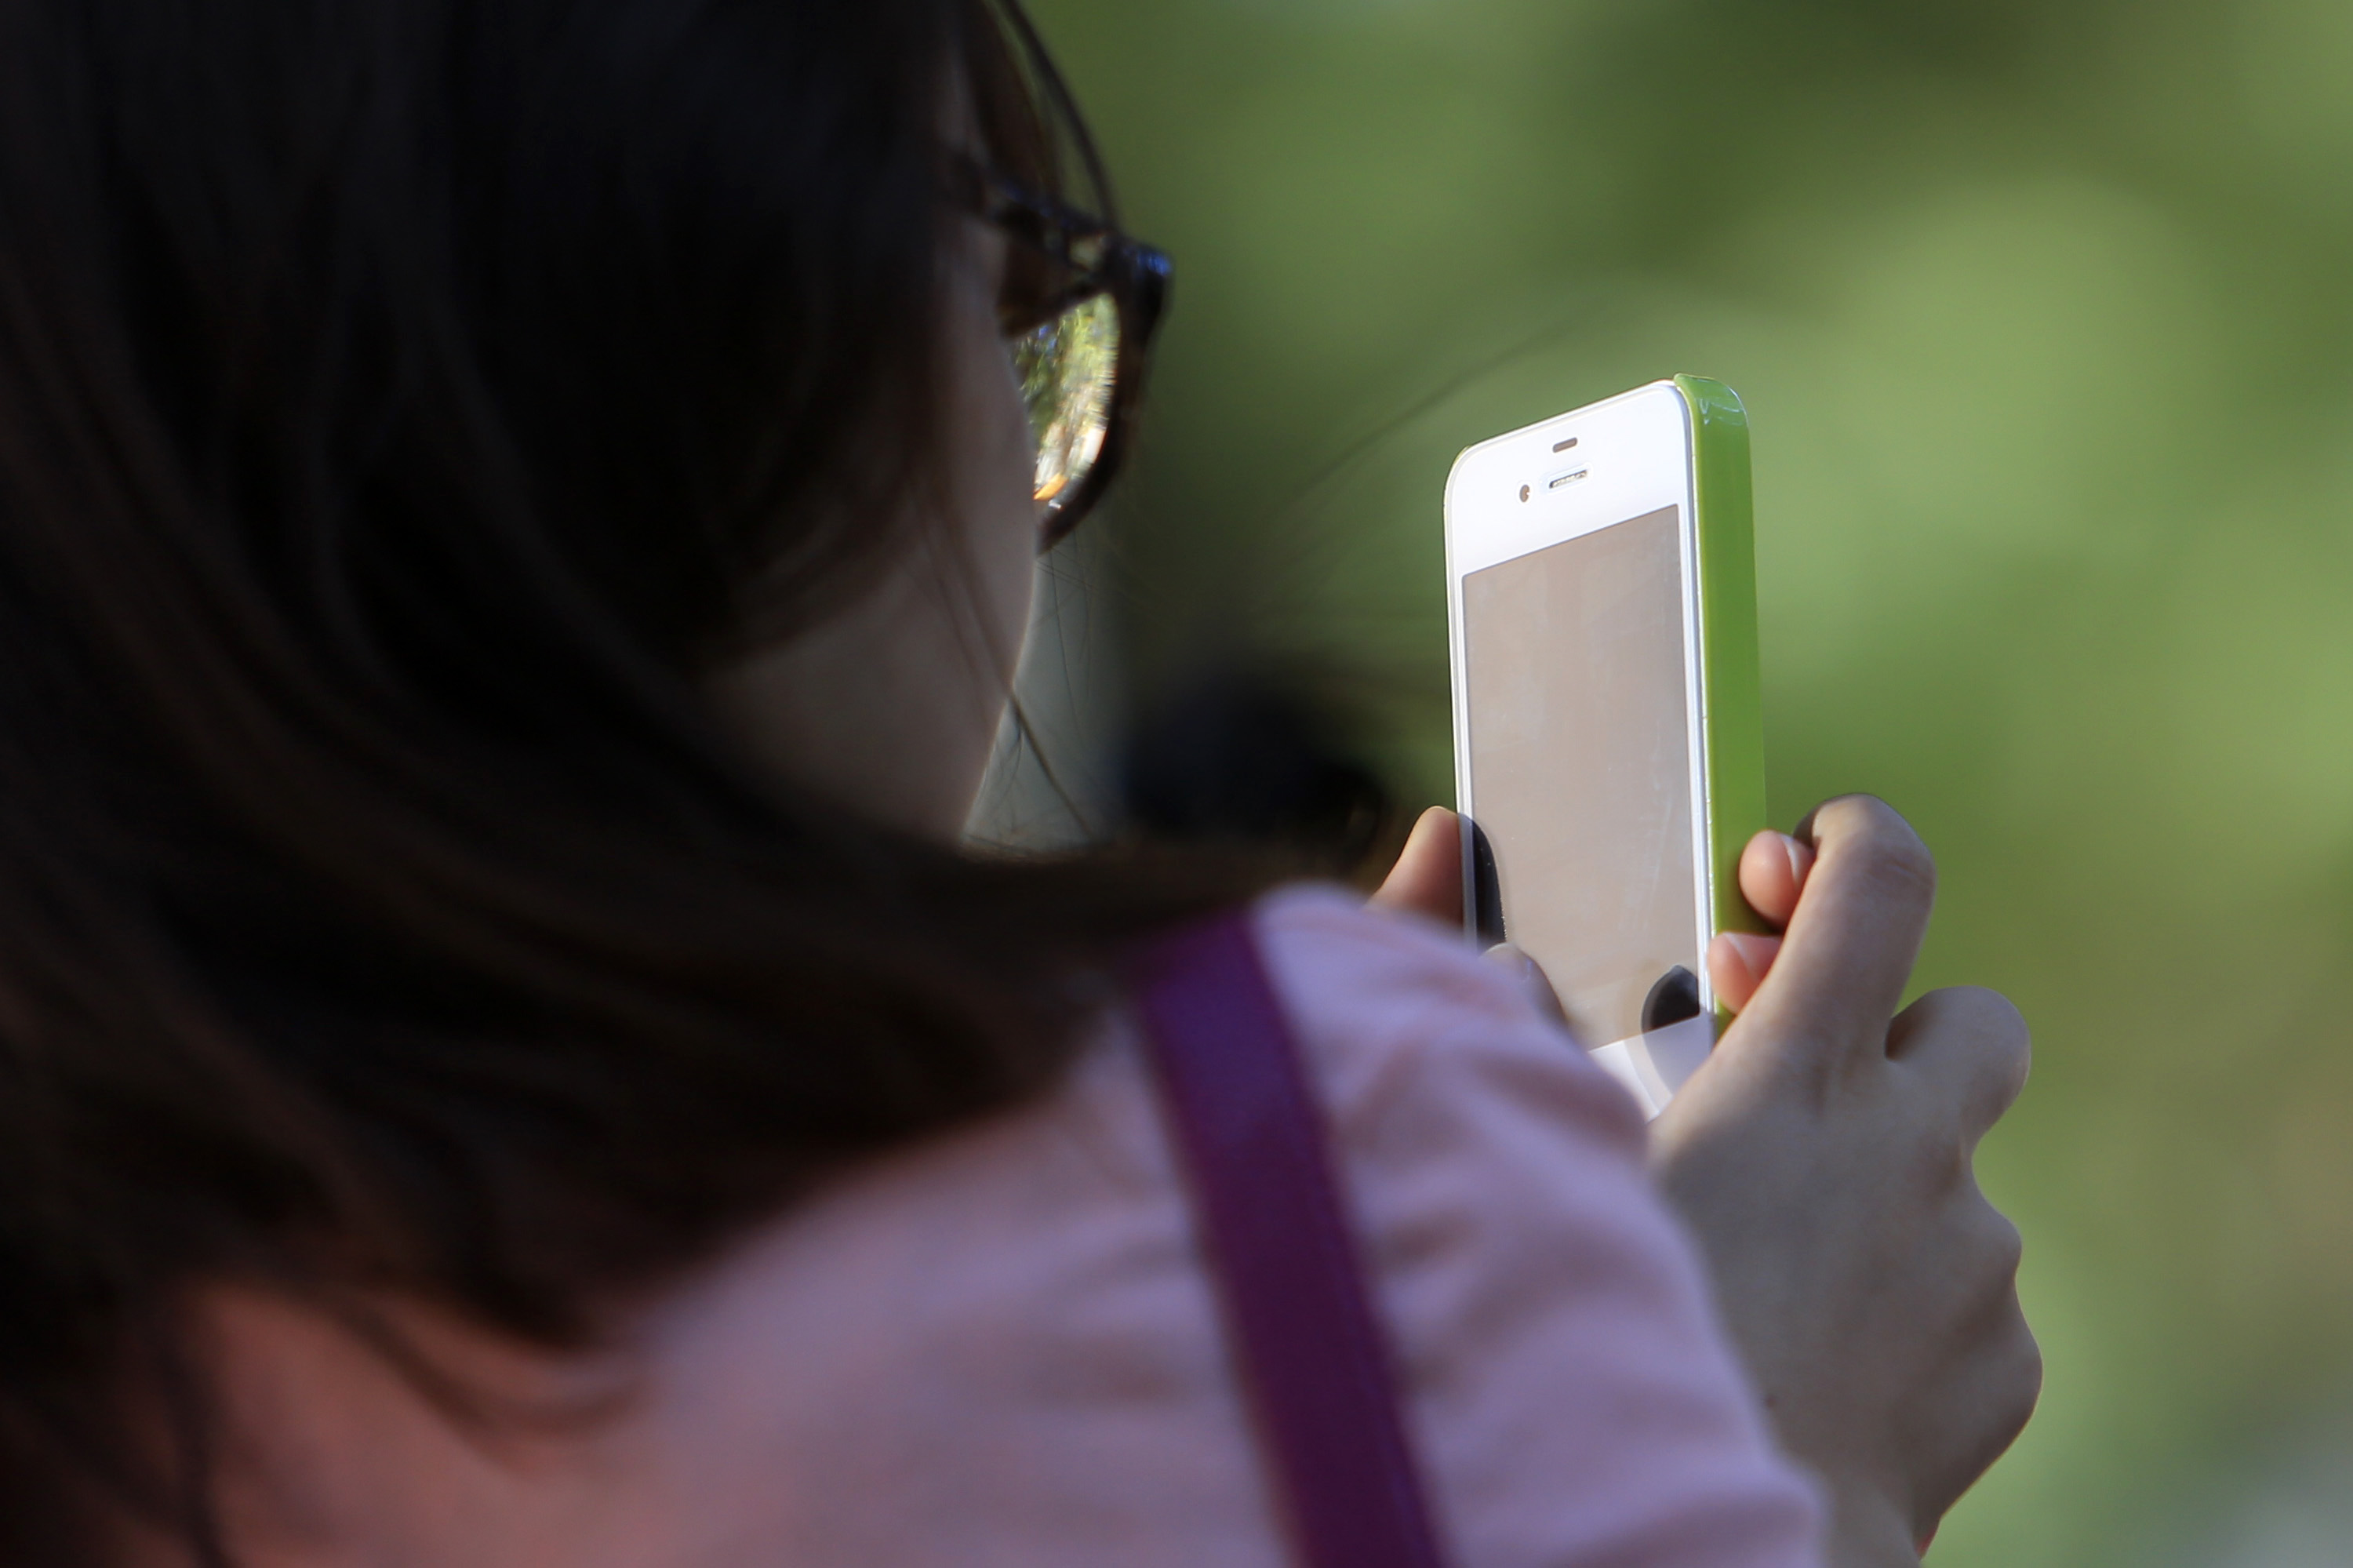 bloomberg.com - Scott Moritz - Consumers Are Hanging On to Old Mobile Phones in Record Numbers